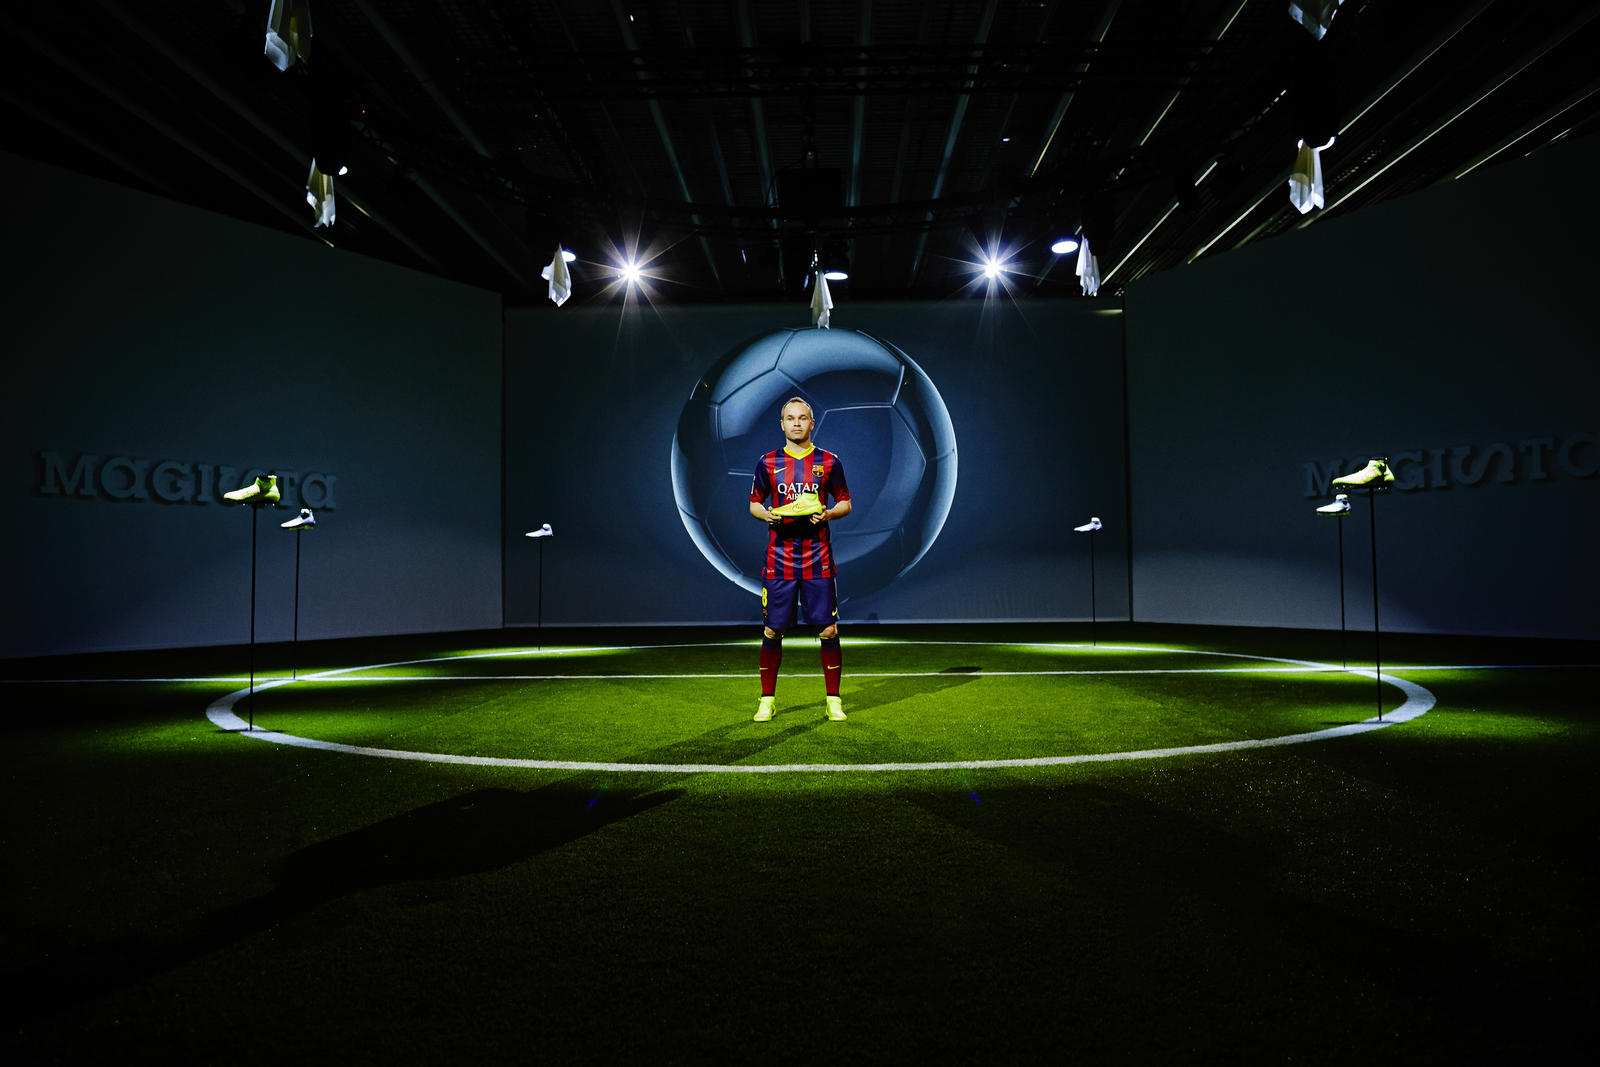 nike changes football boots forever with new magista. Black Bedroom Furniture Sets. Home Design Ideas